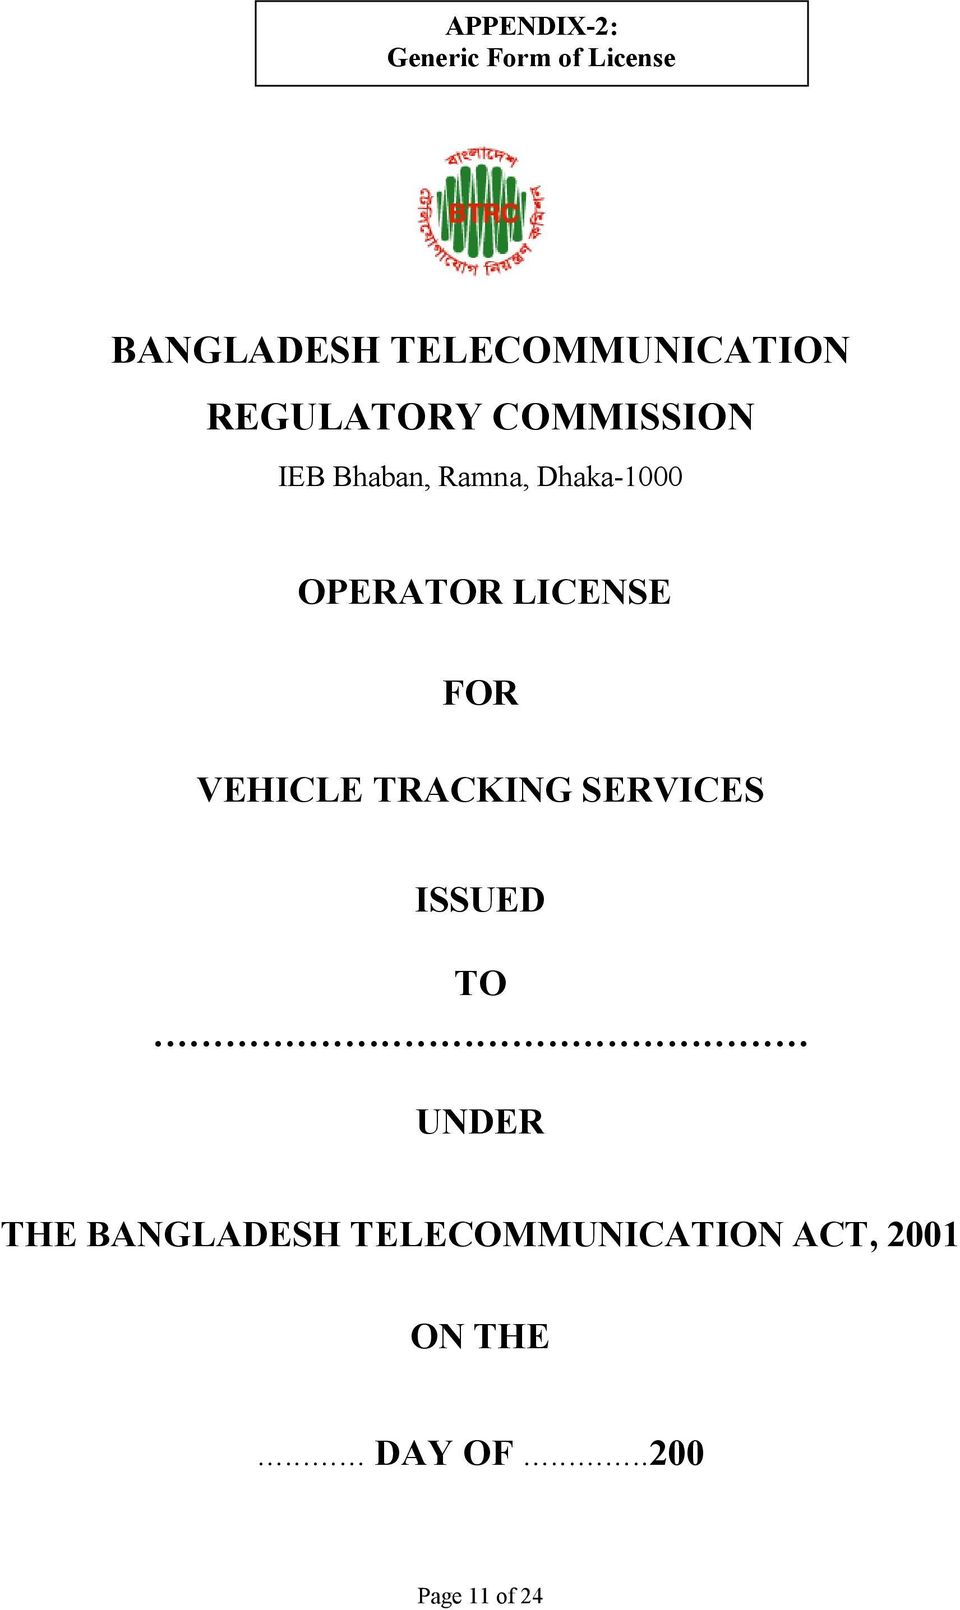 LICENSE FOR VEHICLE TRACKING SERVICES ISSUED TO.